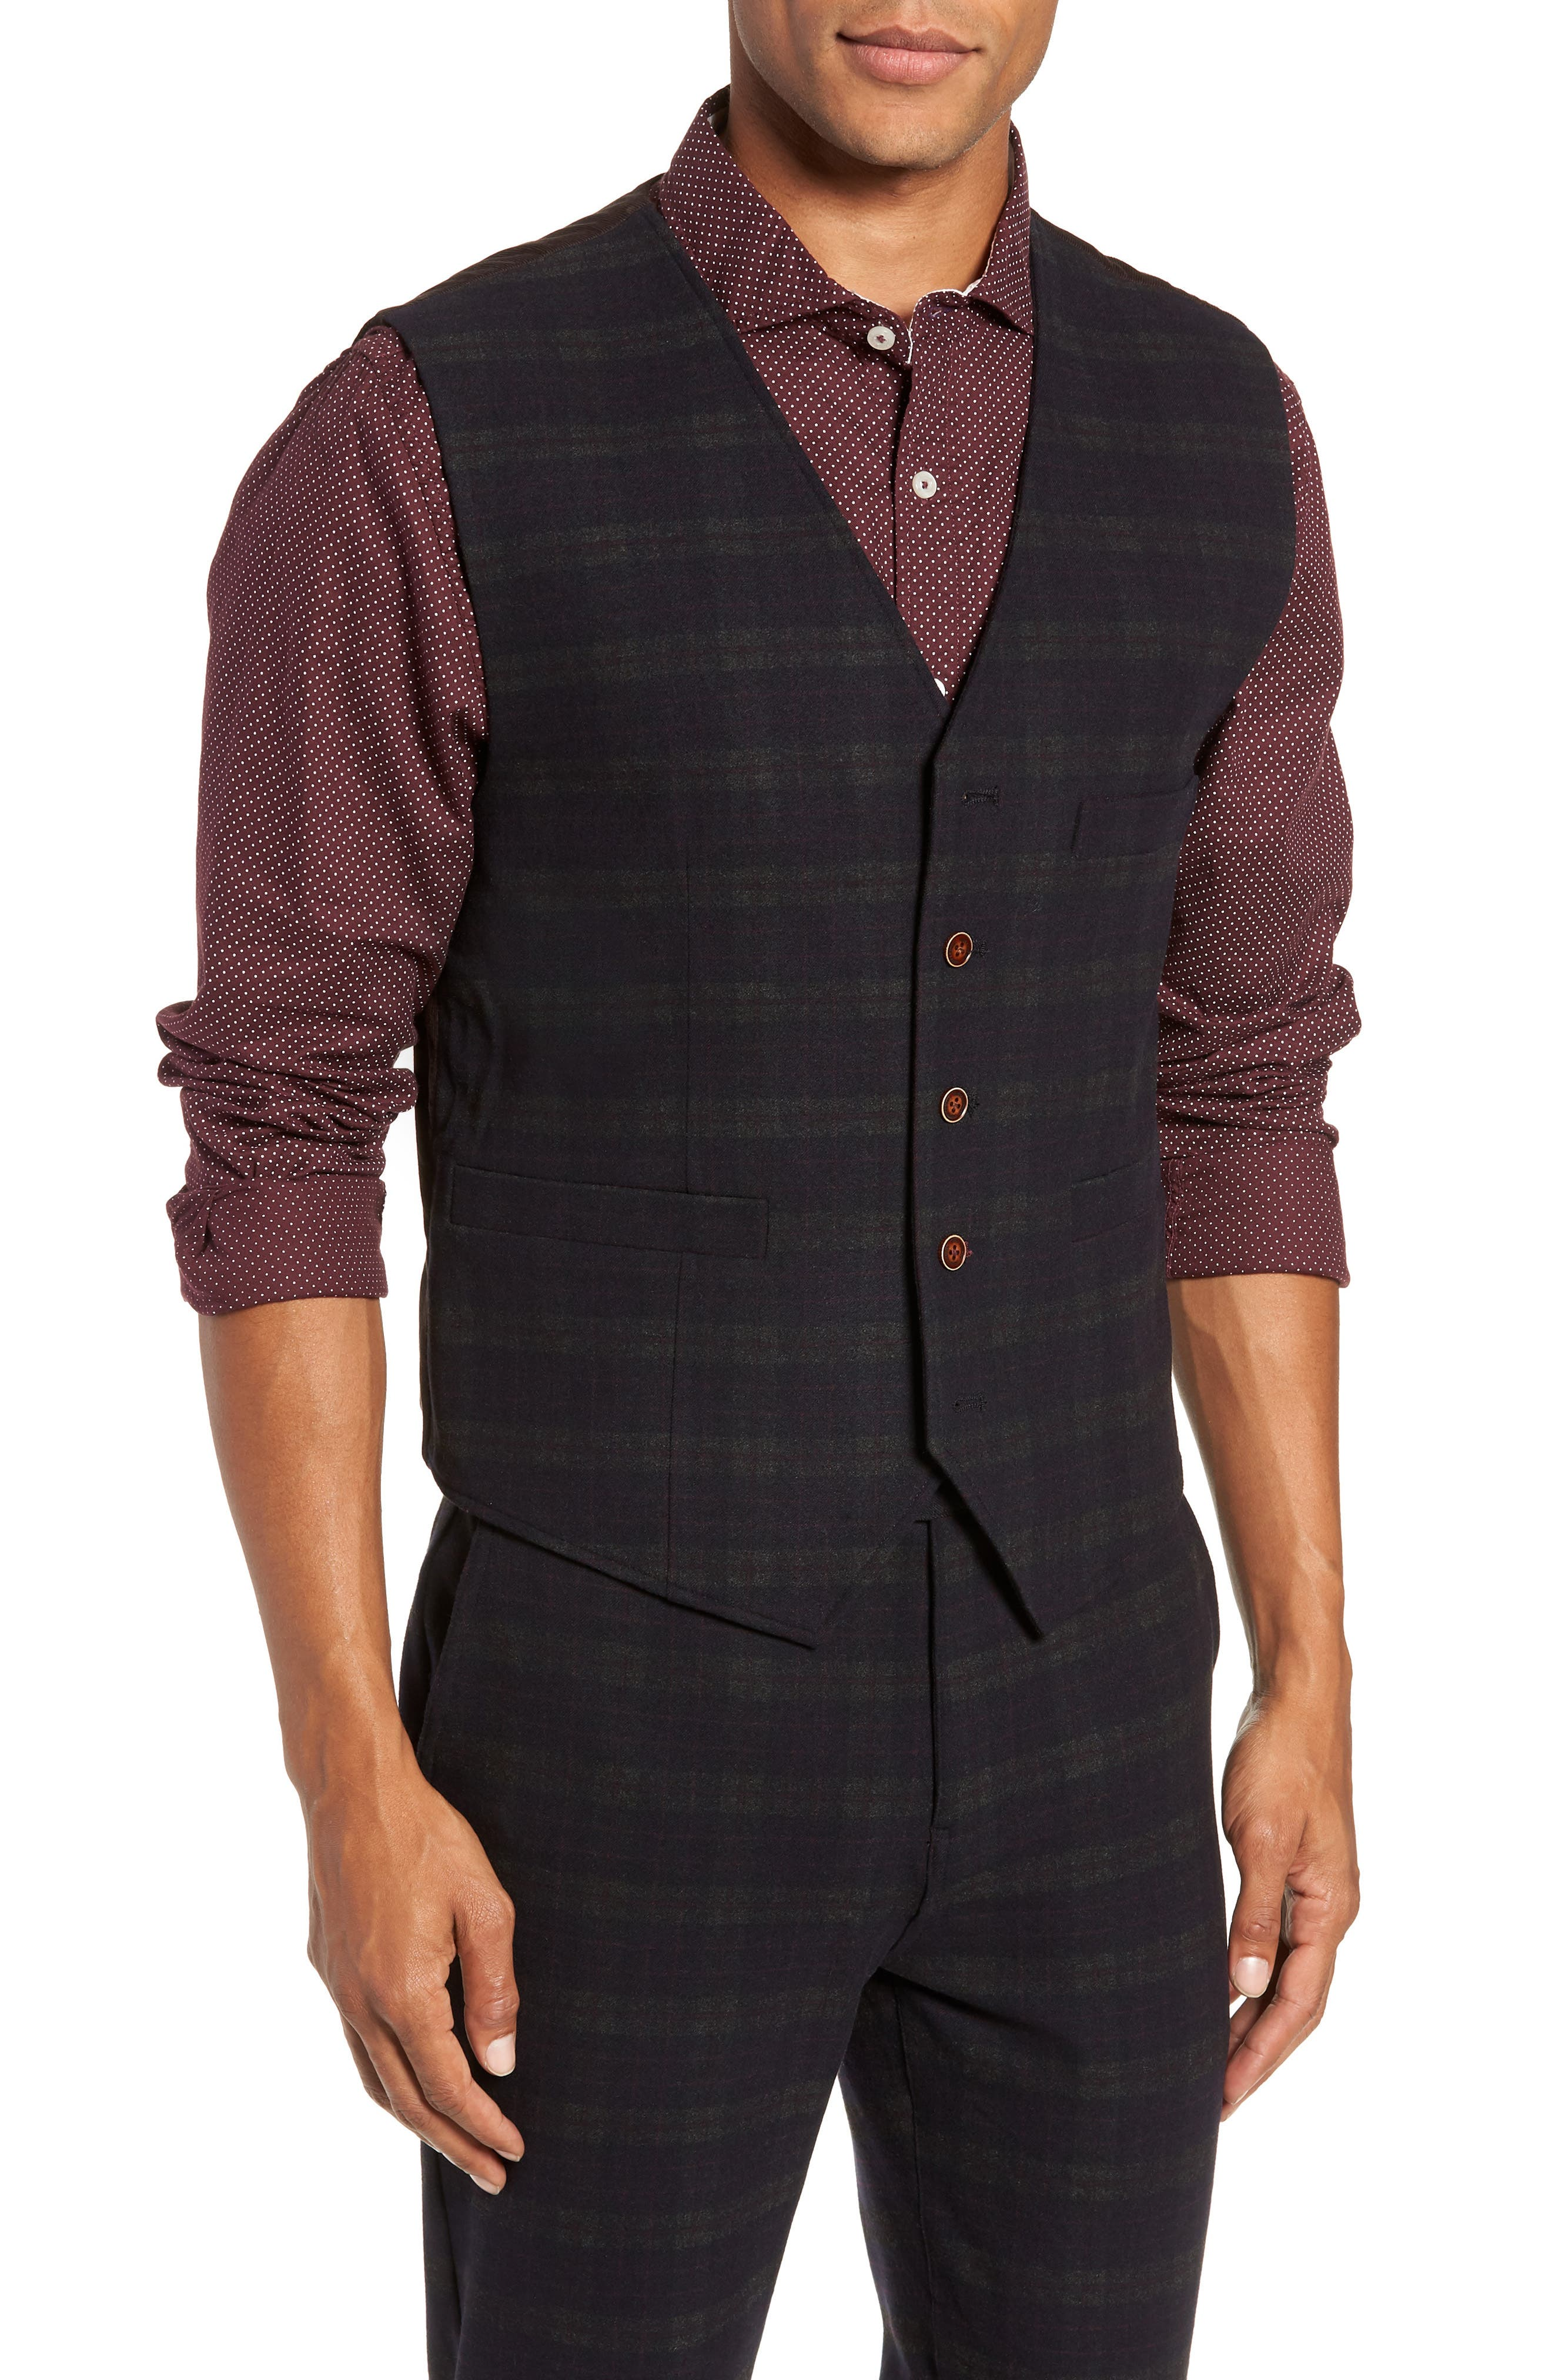 Albert Regular Fit Stretch Vest,                             Main thumbnail 1, color,                             MIDNIGHT/ RED/ CHARCOAL